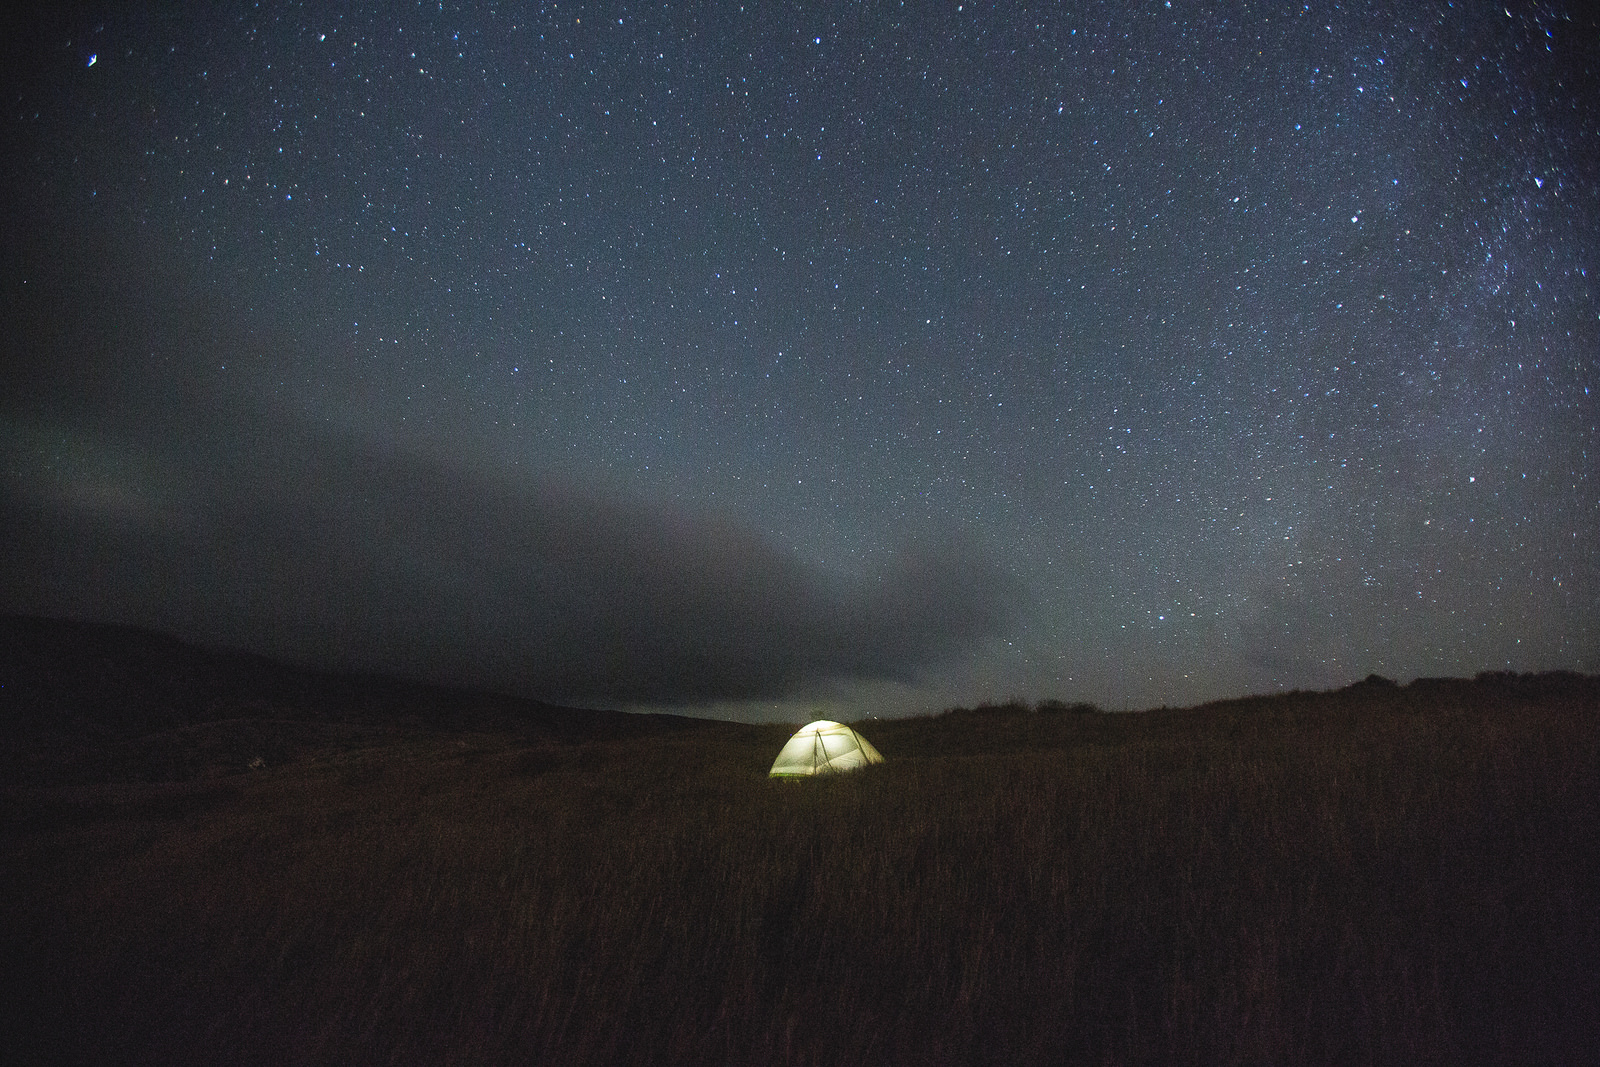 Starry night at Channel Islands National Park